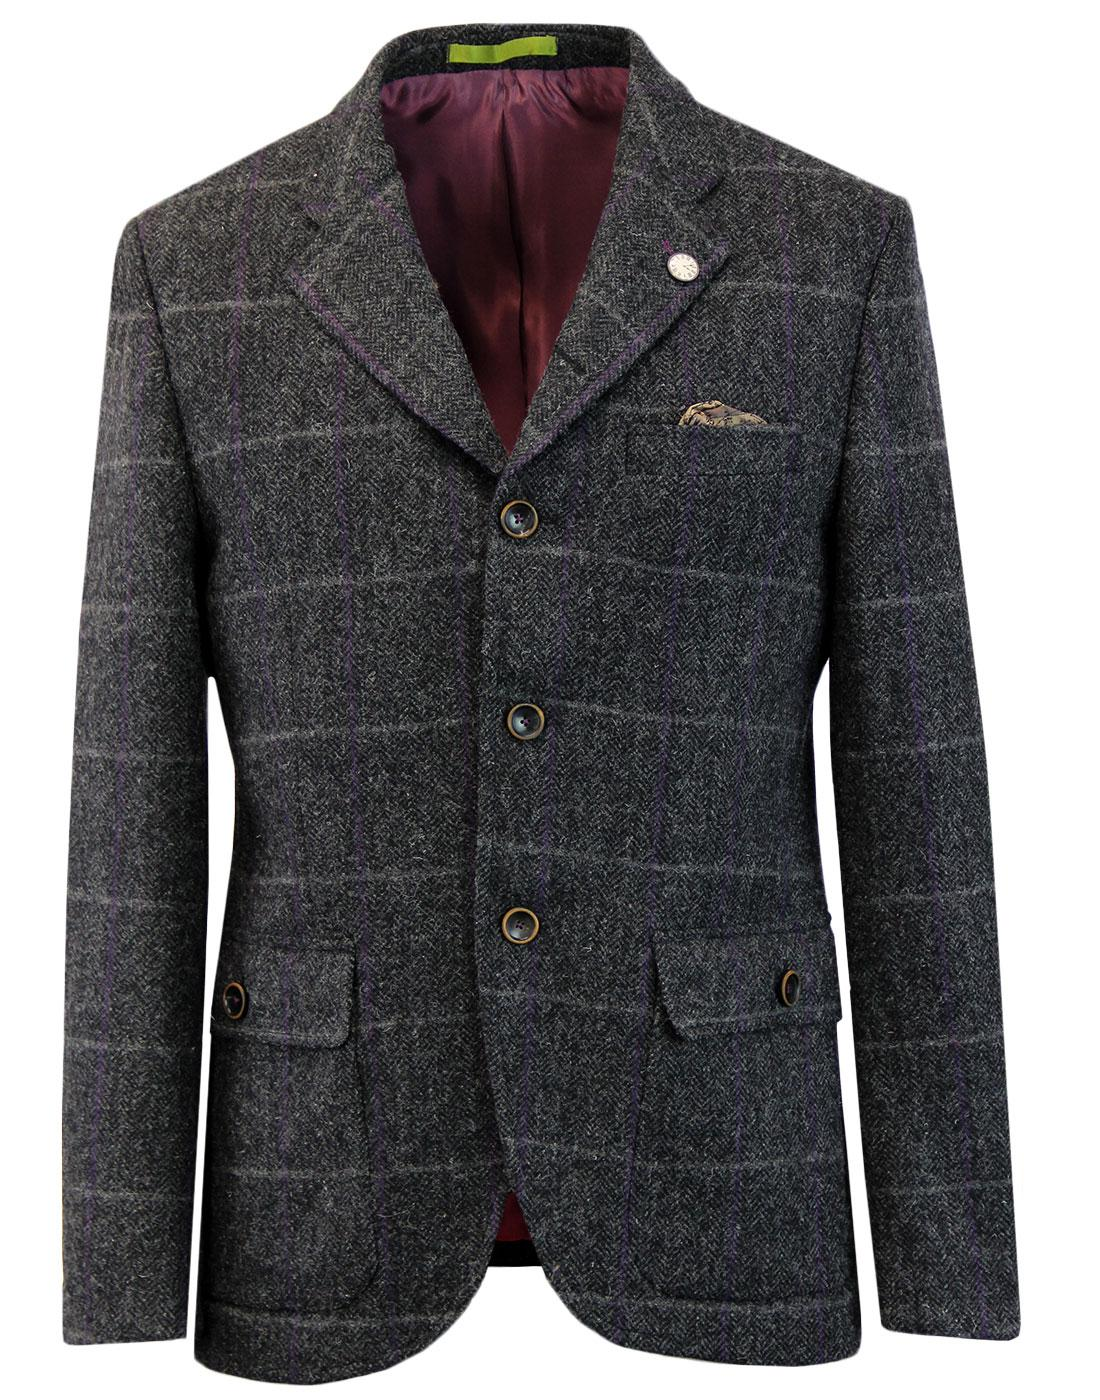 Grouse GIBSON LONDON Herringbone Check Blazer (C)